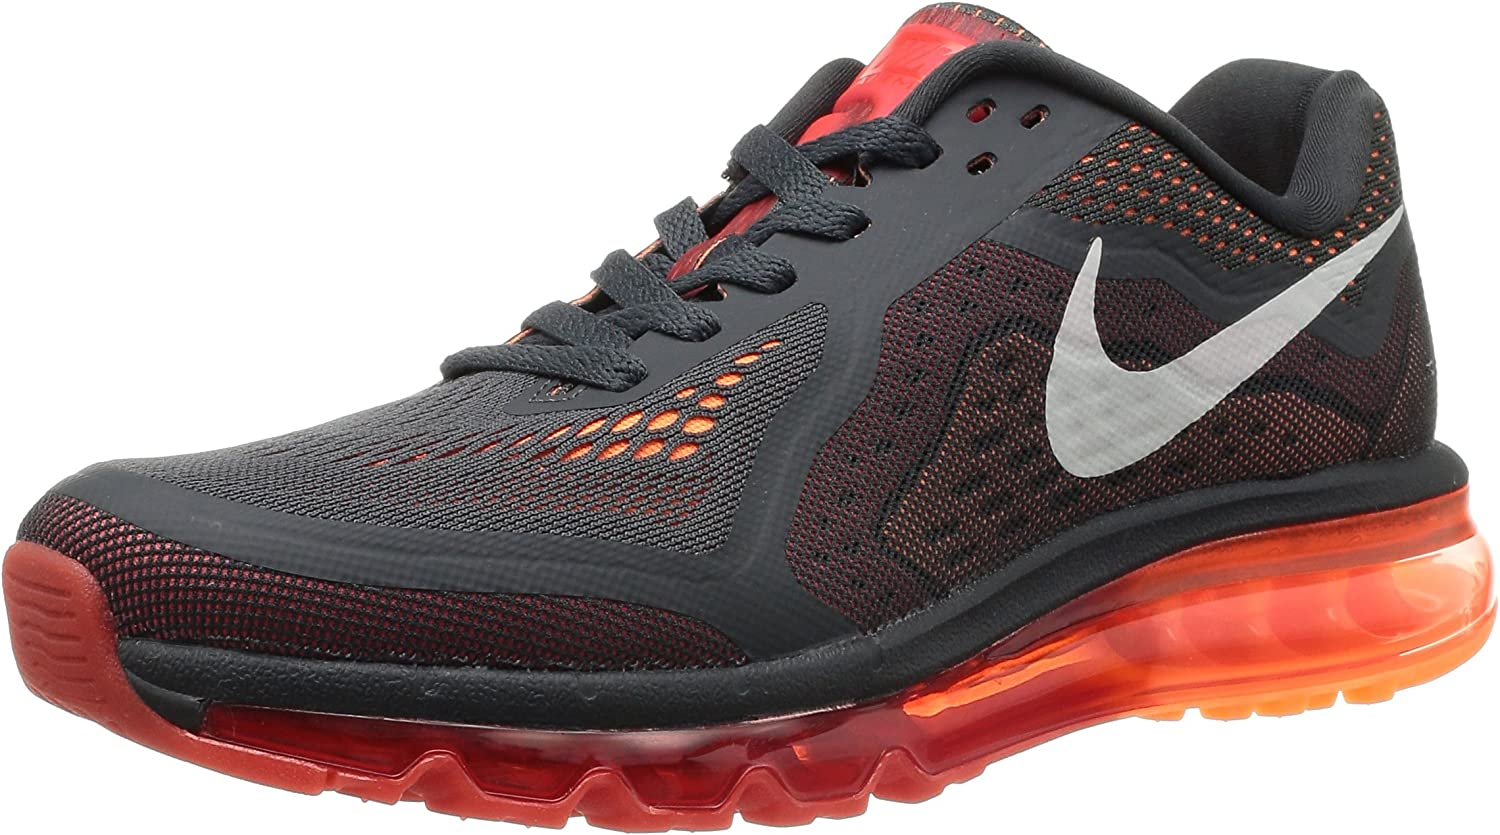 Nike Air Max 2014 Mens Style 621077-006 Size 10.5 Anthrct Slate Lt Crimson and Atomic Orange